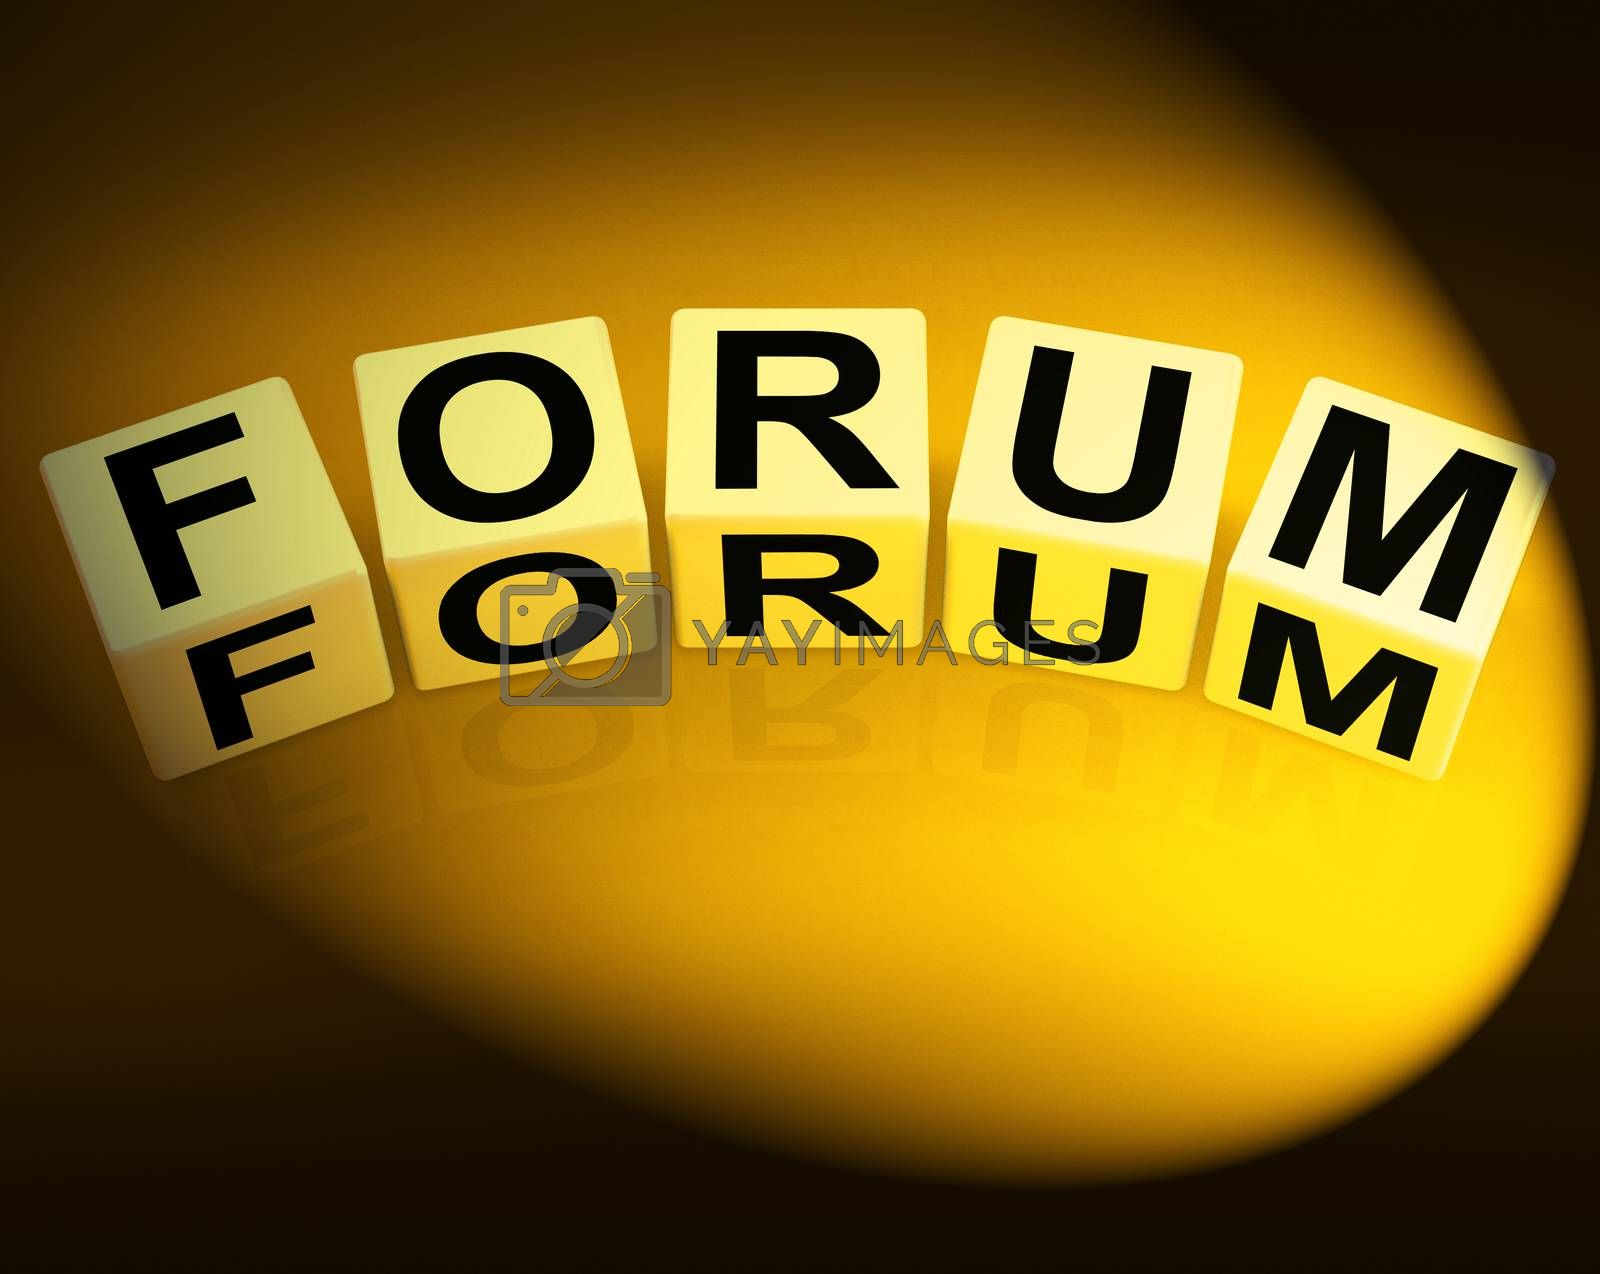 Forum Dice Show Advice or Social Media or Conference by stuartmiles